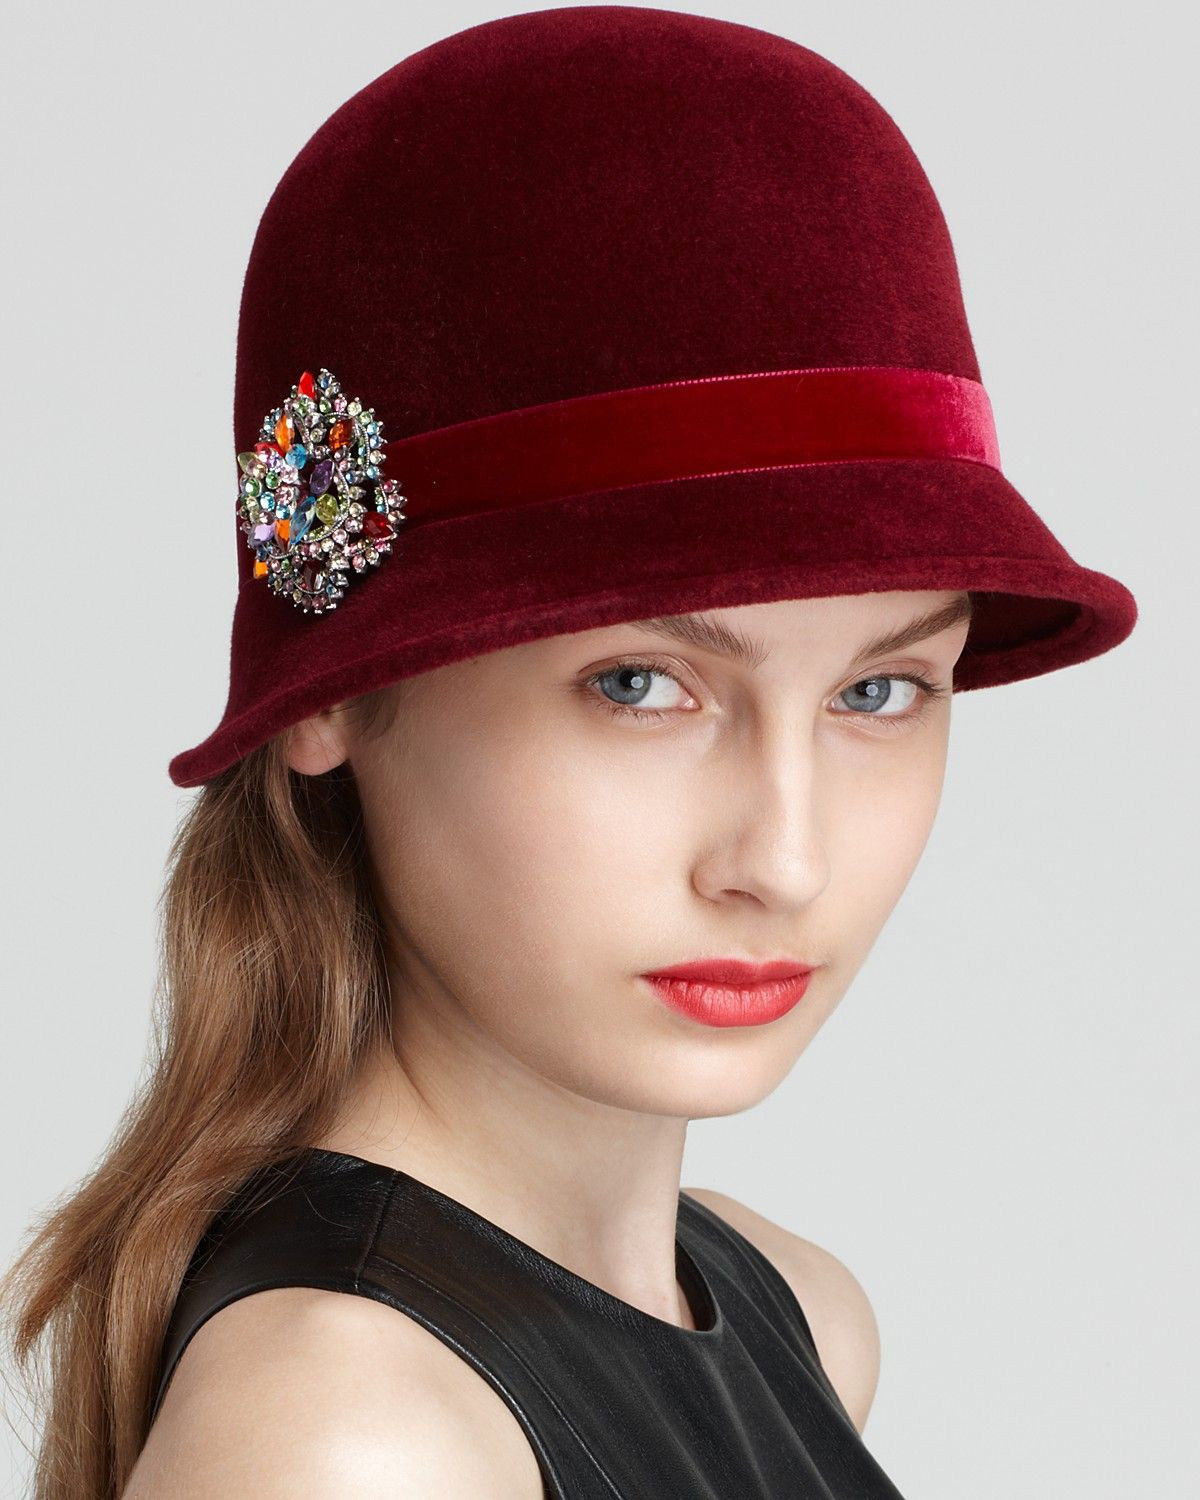 Kathy Jeanne Velour Cloche With Pin Bloomingdales